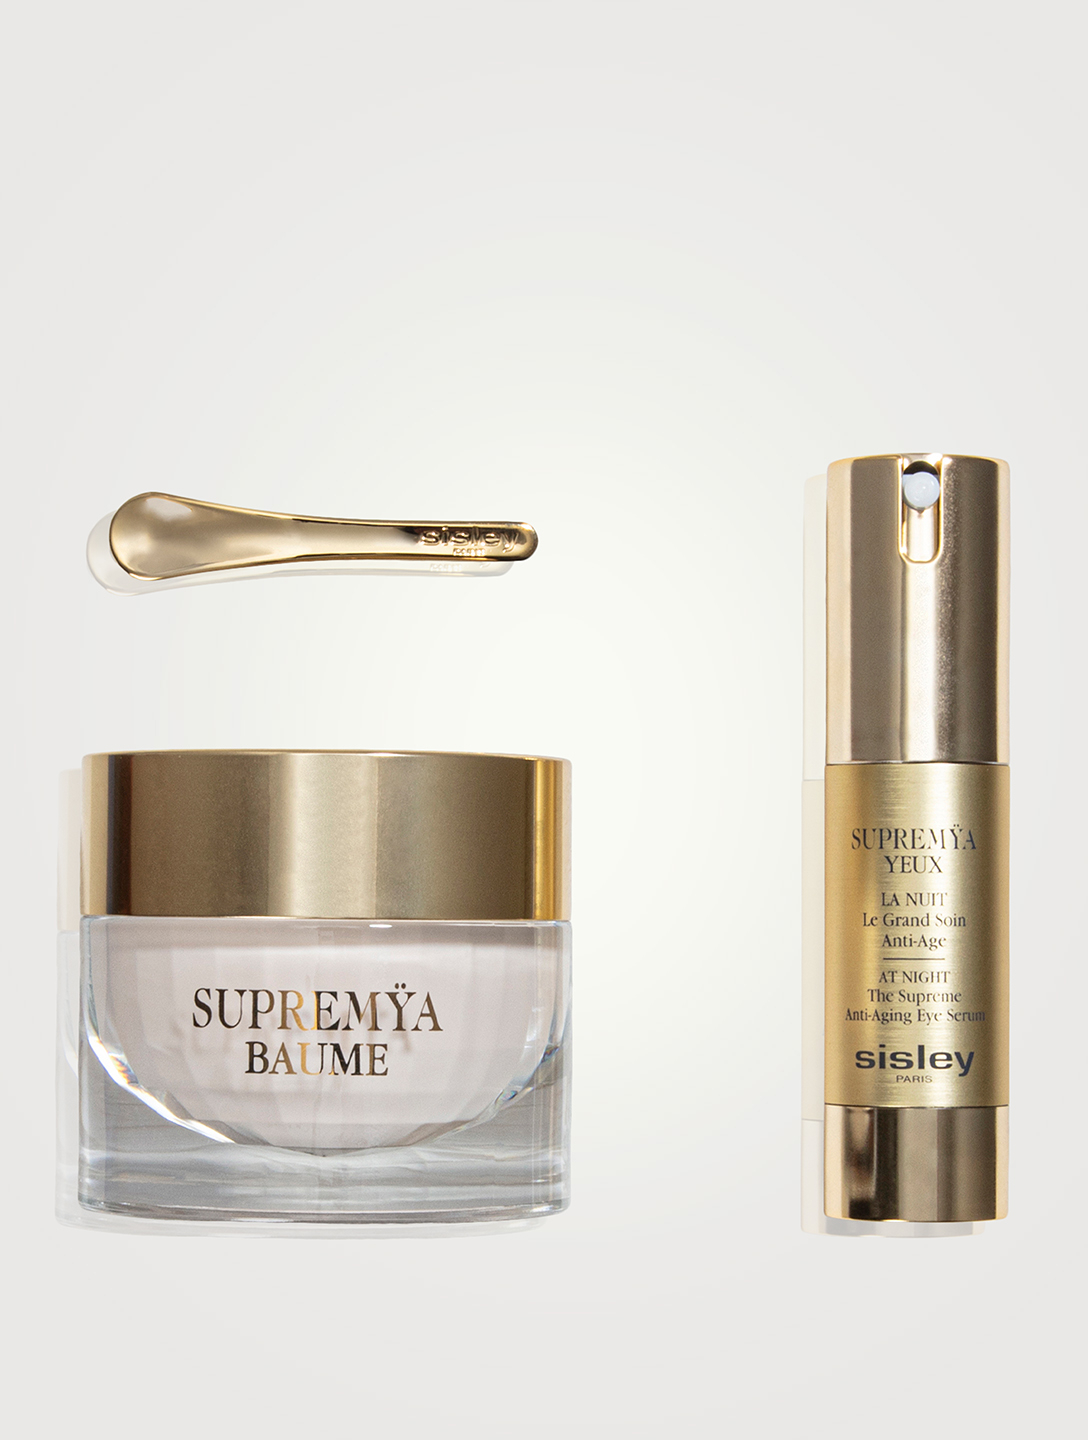 SISLEY-PARIS Supremÿa Prestige Box Set Beauty